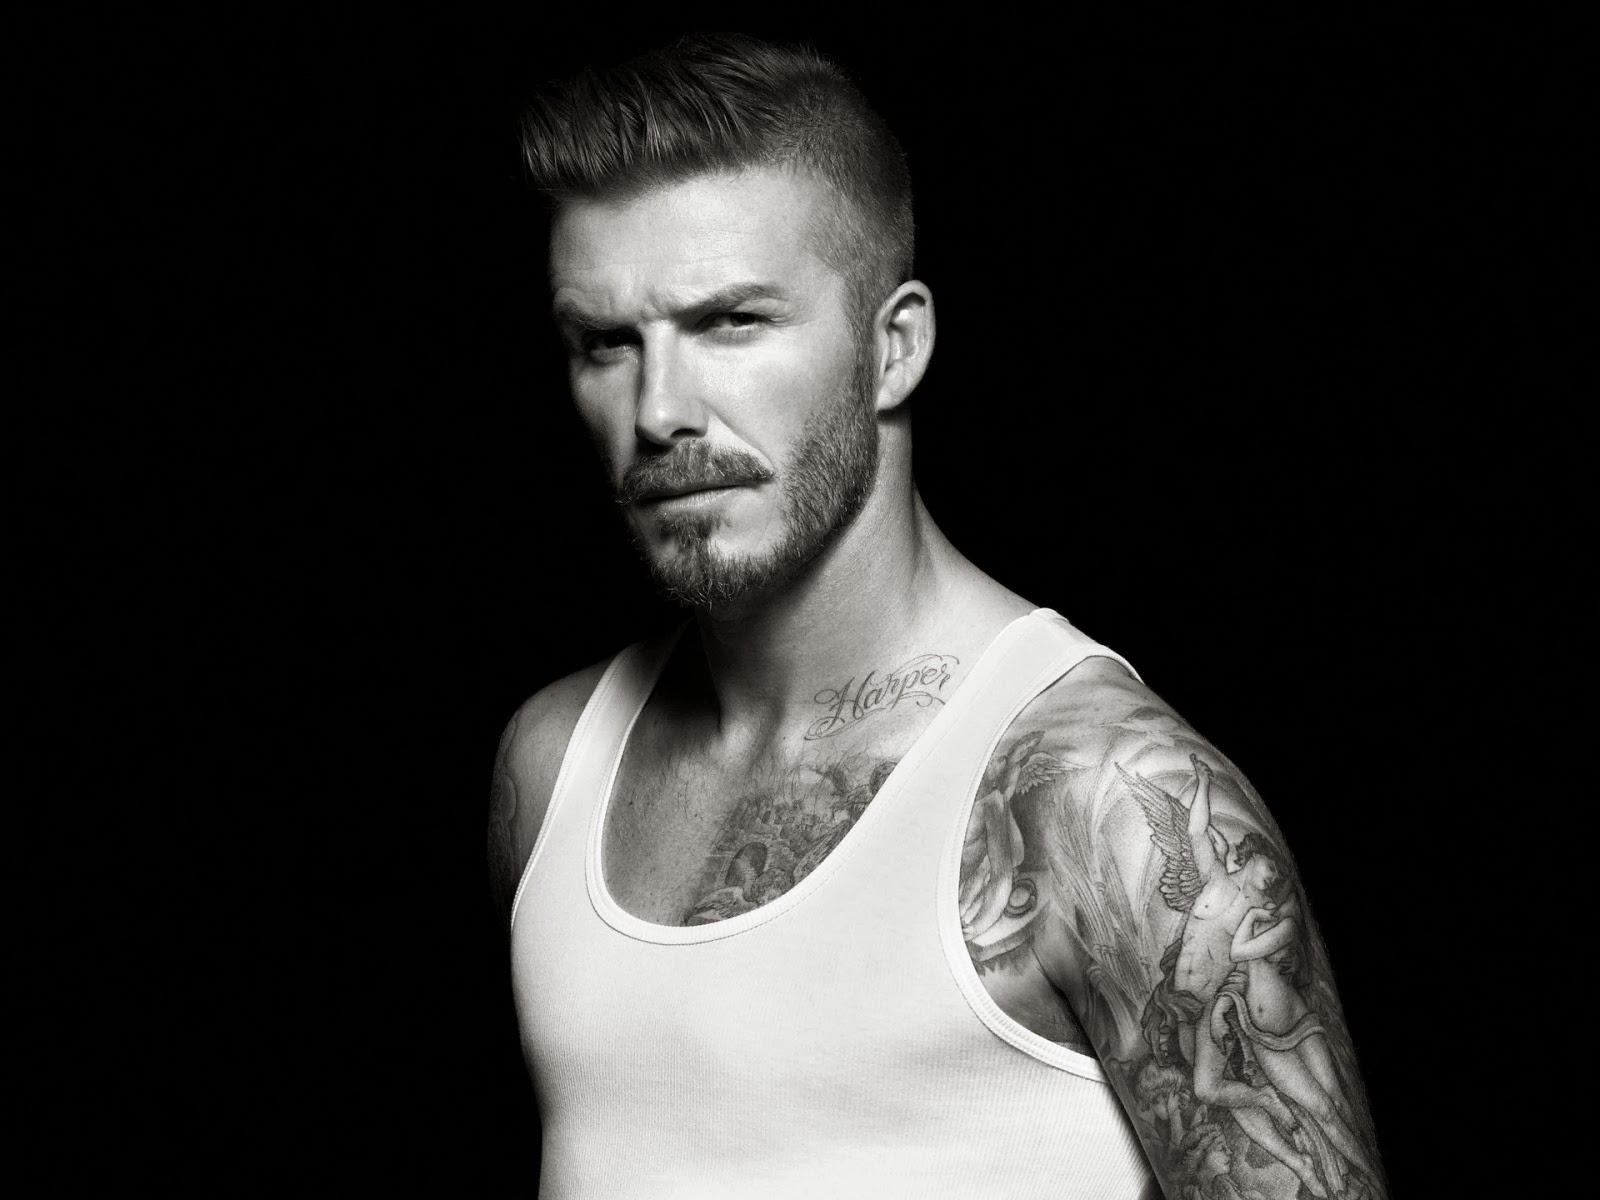 david beckham wallpaper: